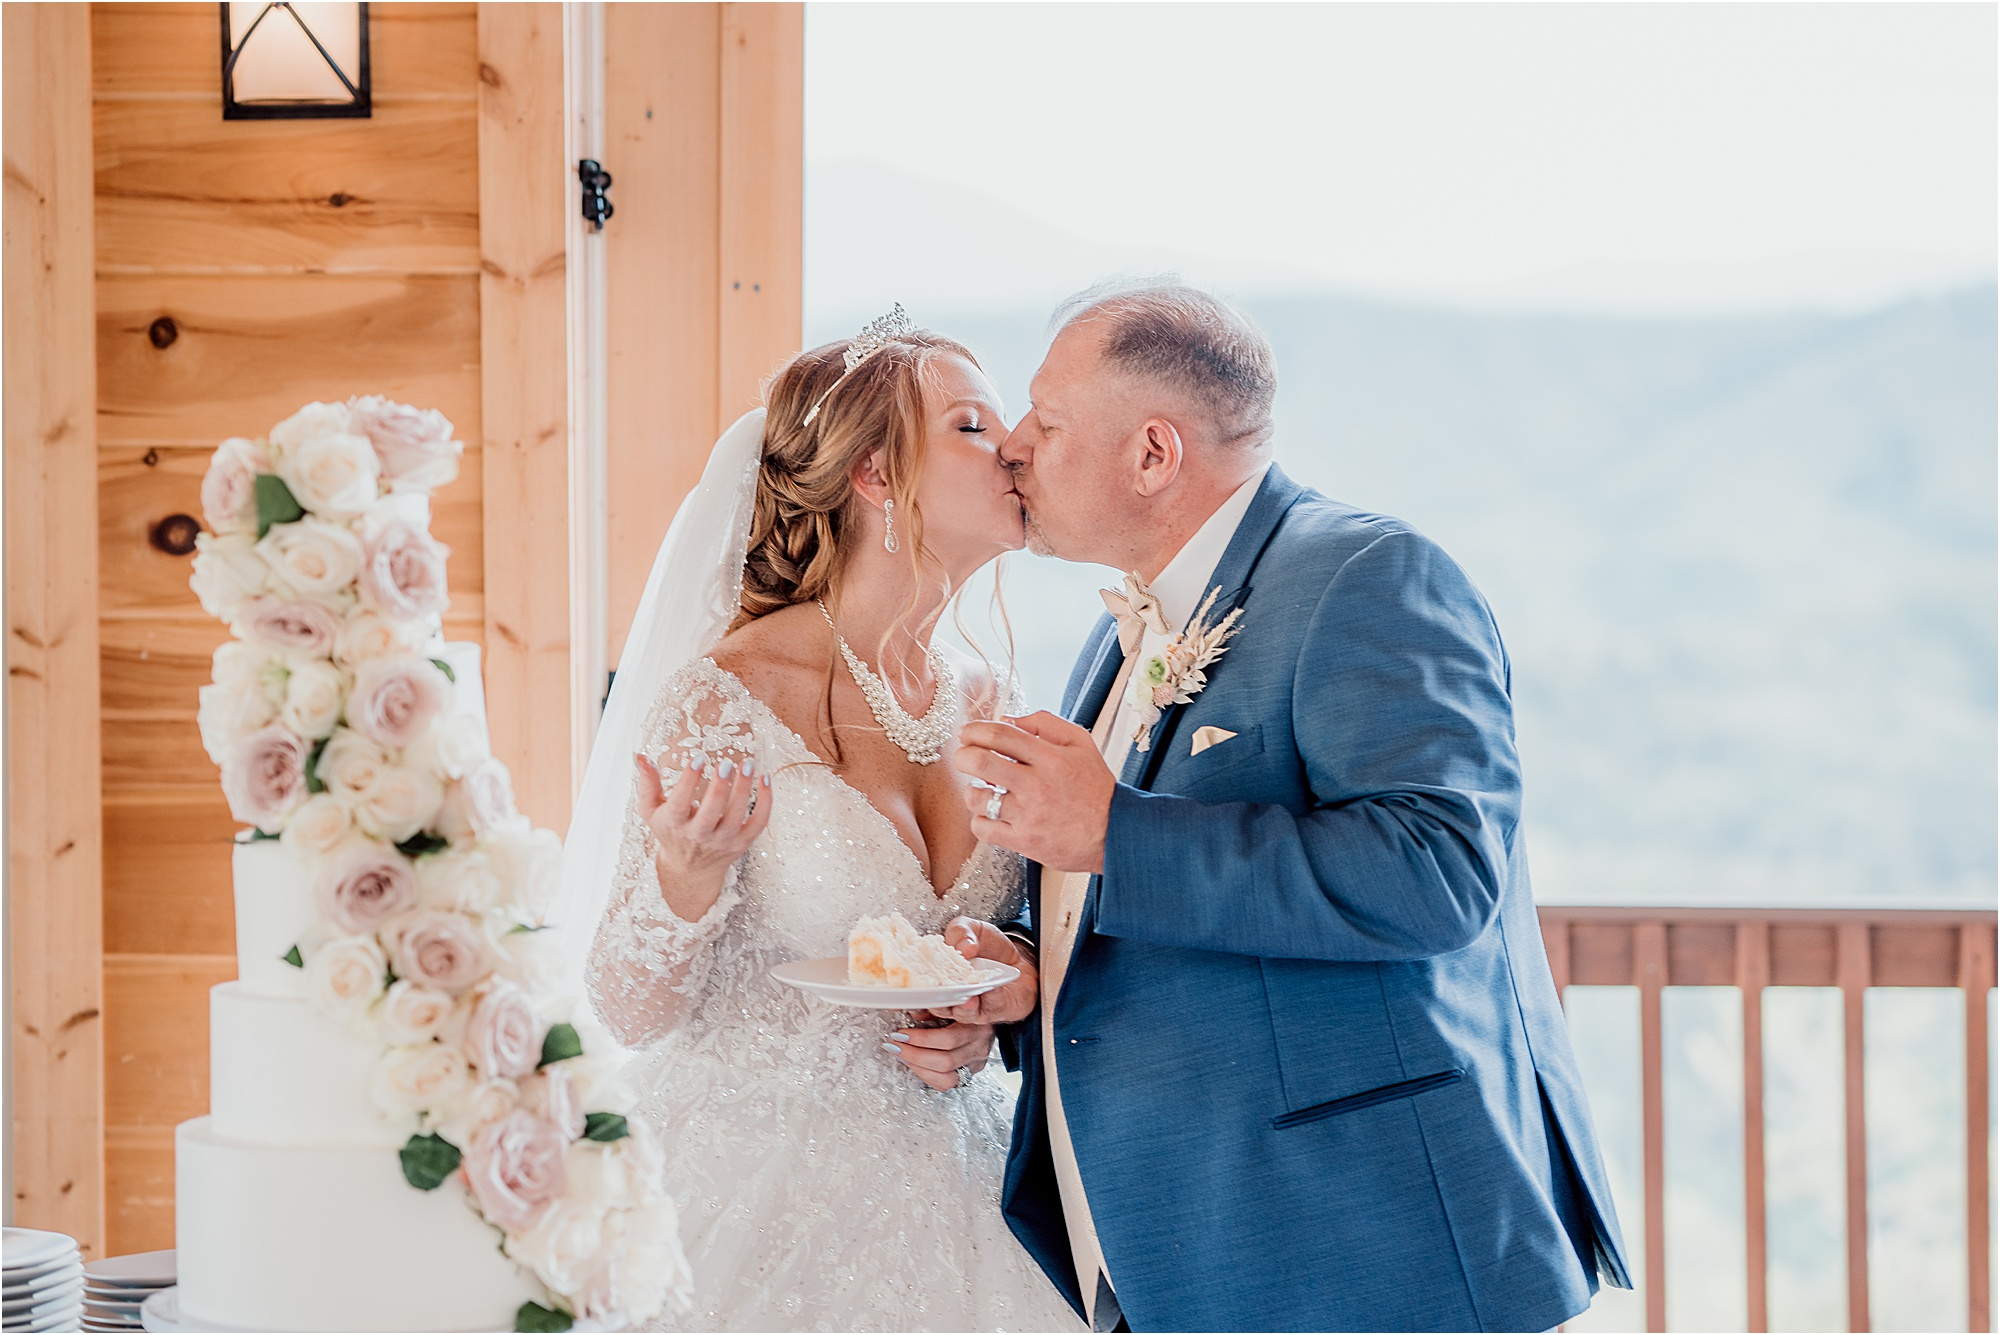 bride and groom kiss after cutting wedding cake